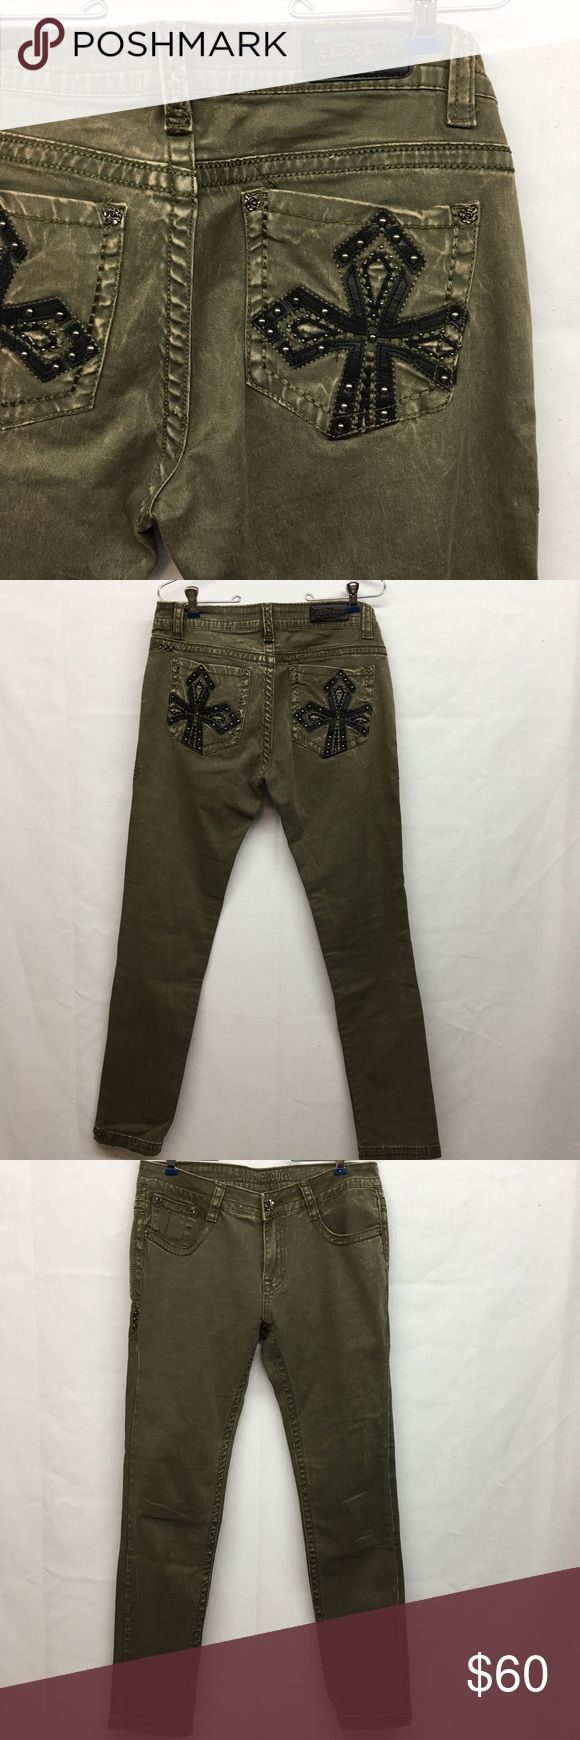 """Rose Royce Military Green Skinny Jeans Rose Royce Military green skinny jeans. NWOT. No flaws. Any appearance of wear is factory intentional. Size 30. Waist laying flat 16"""". Rise 9"""". Inseam 30 1/2"""". Rose Royce Jeans Skinny"""